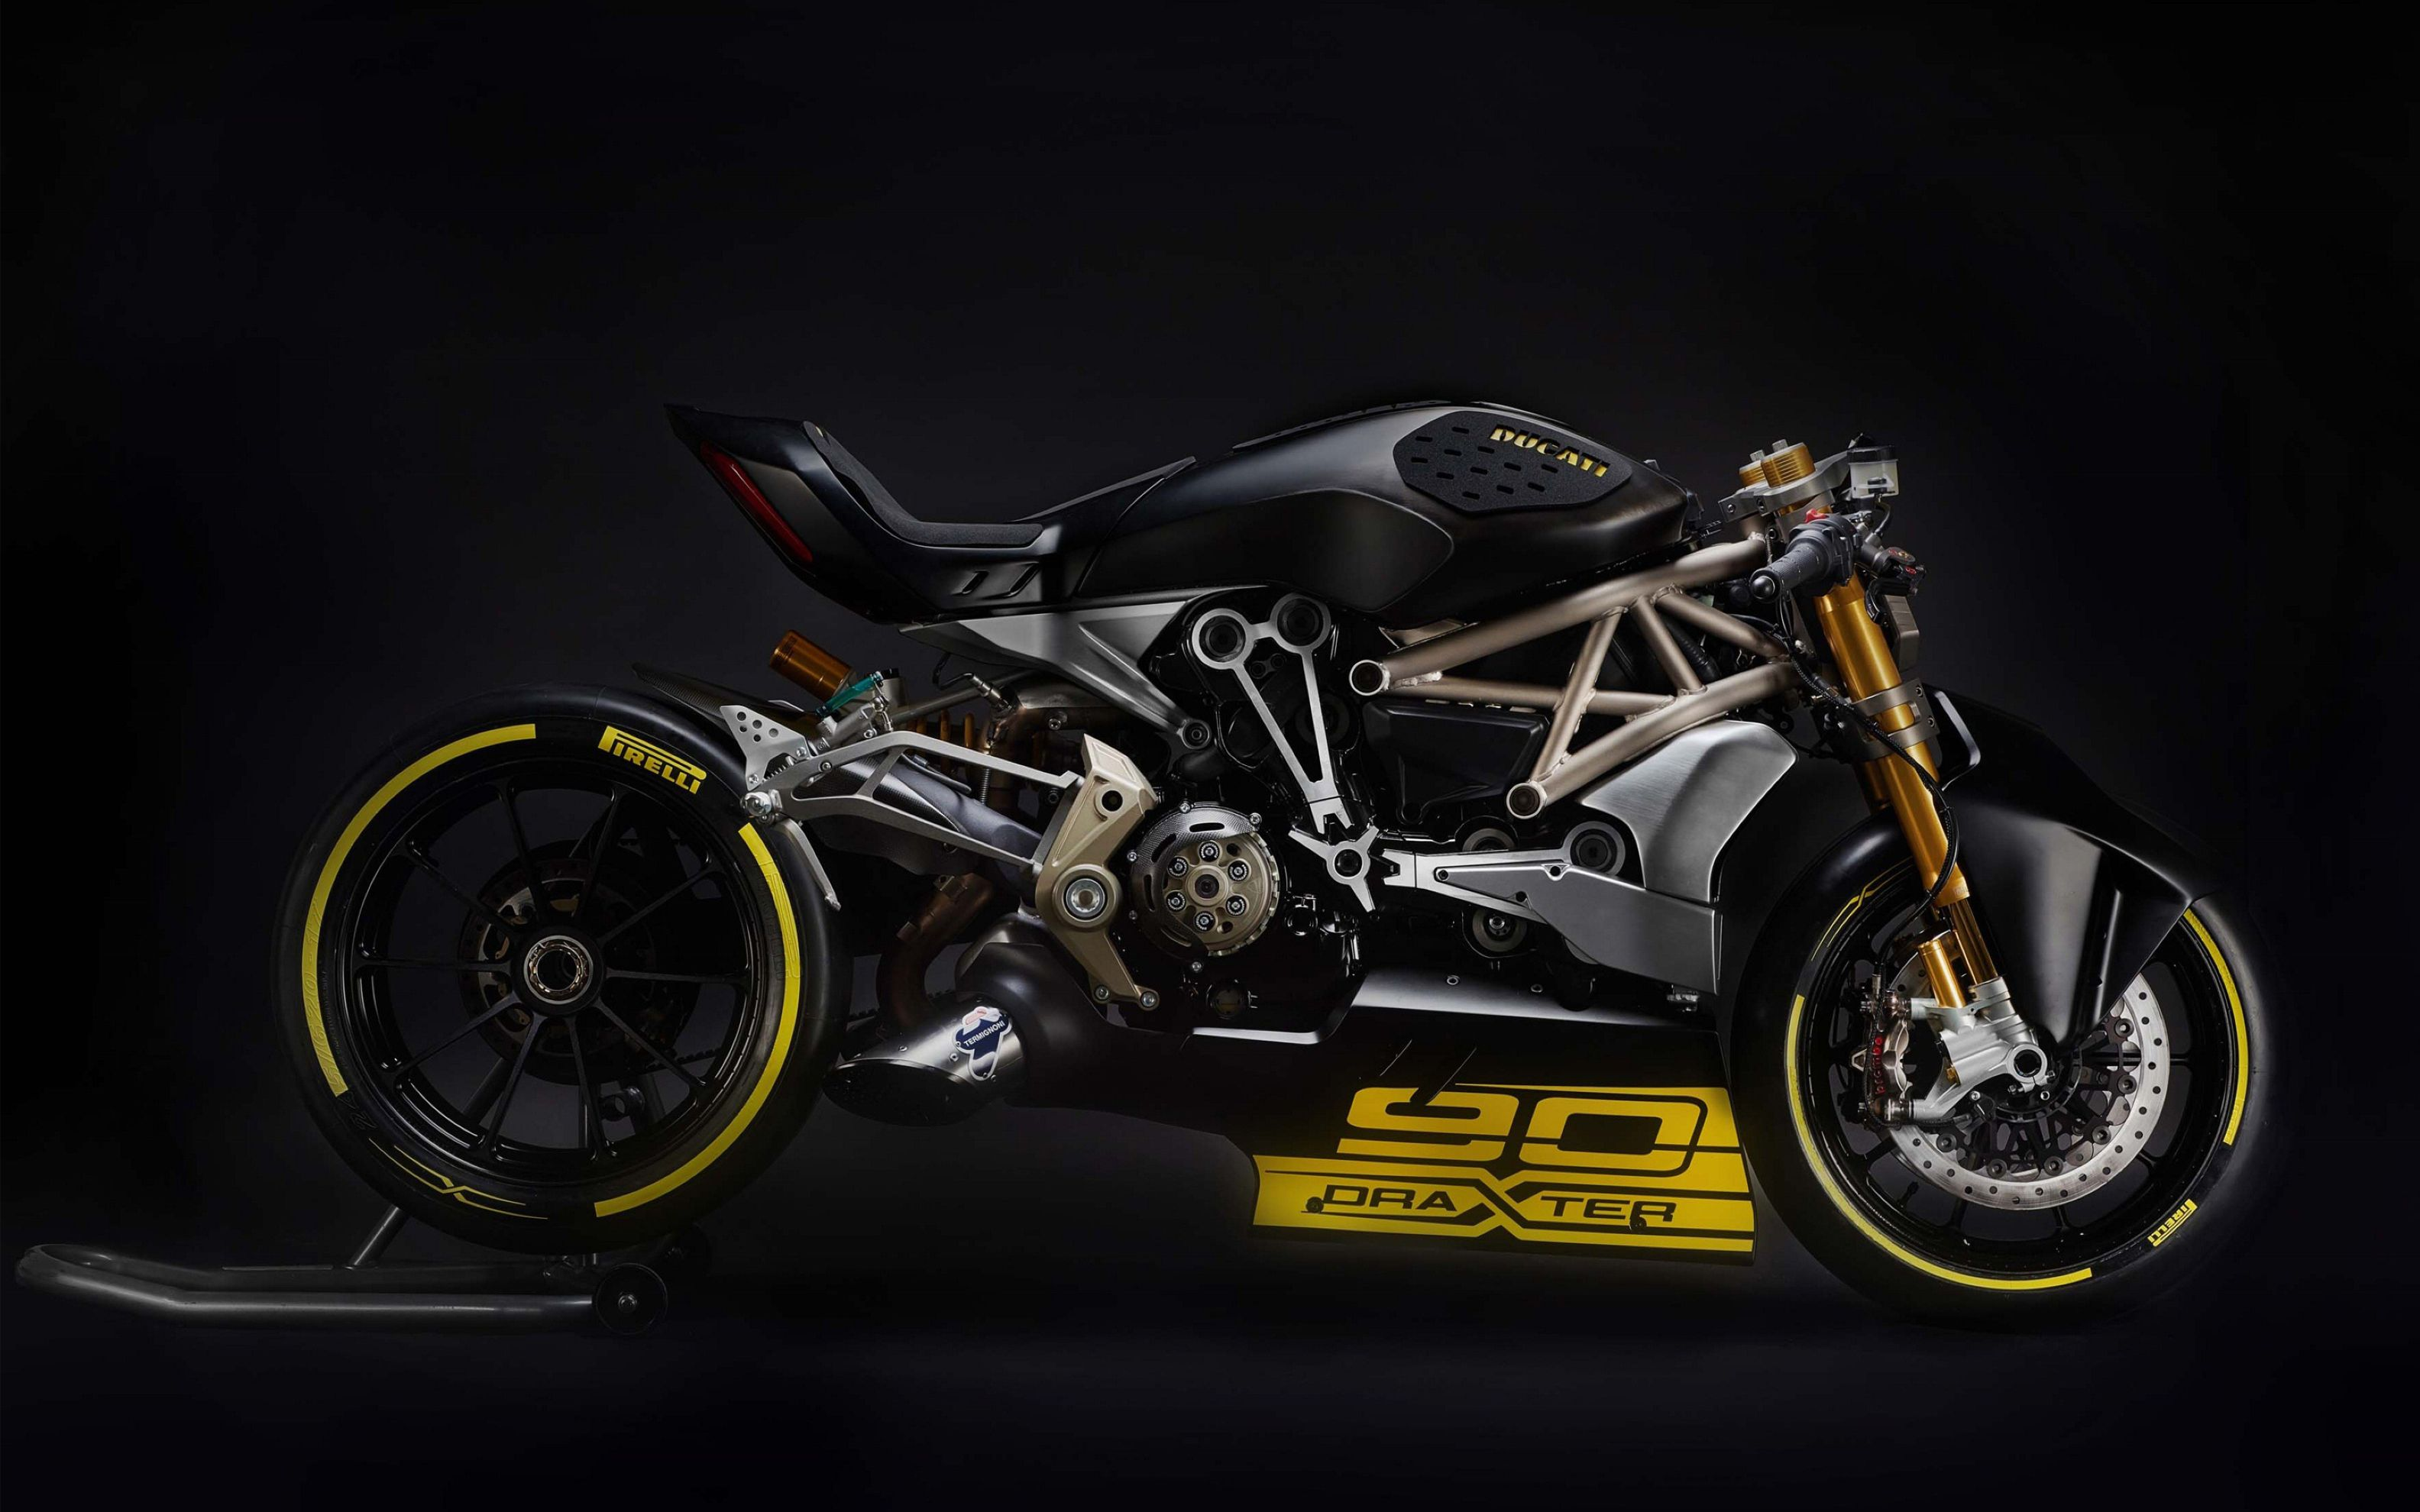 Download free HD 2016 Ducati Draxter Wide Wallpaper, image